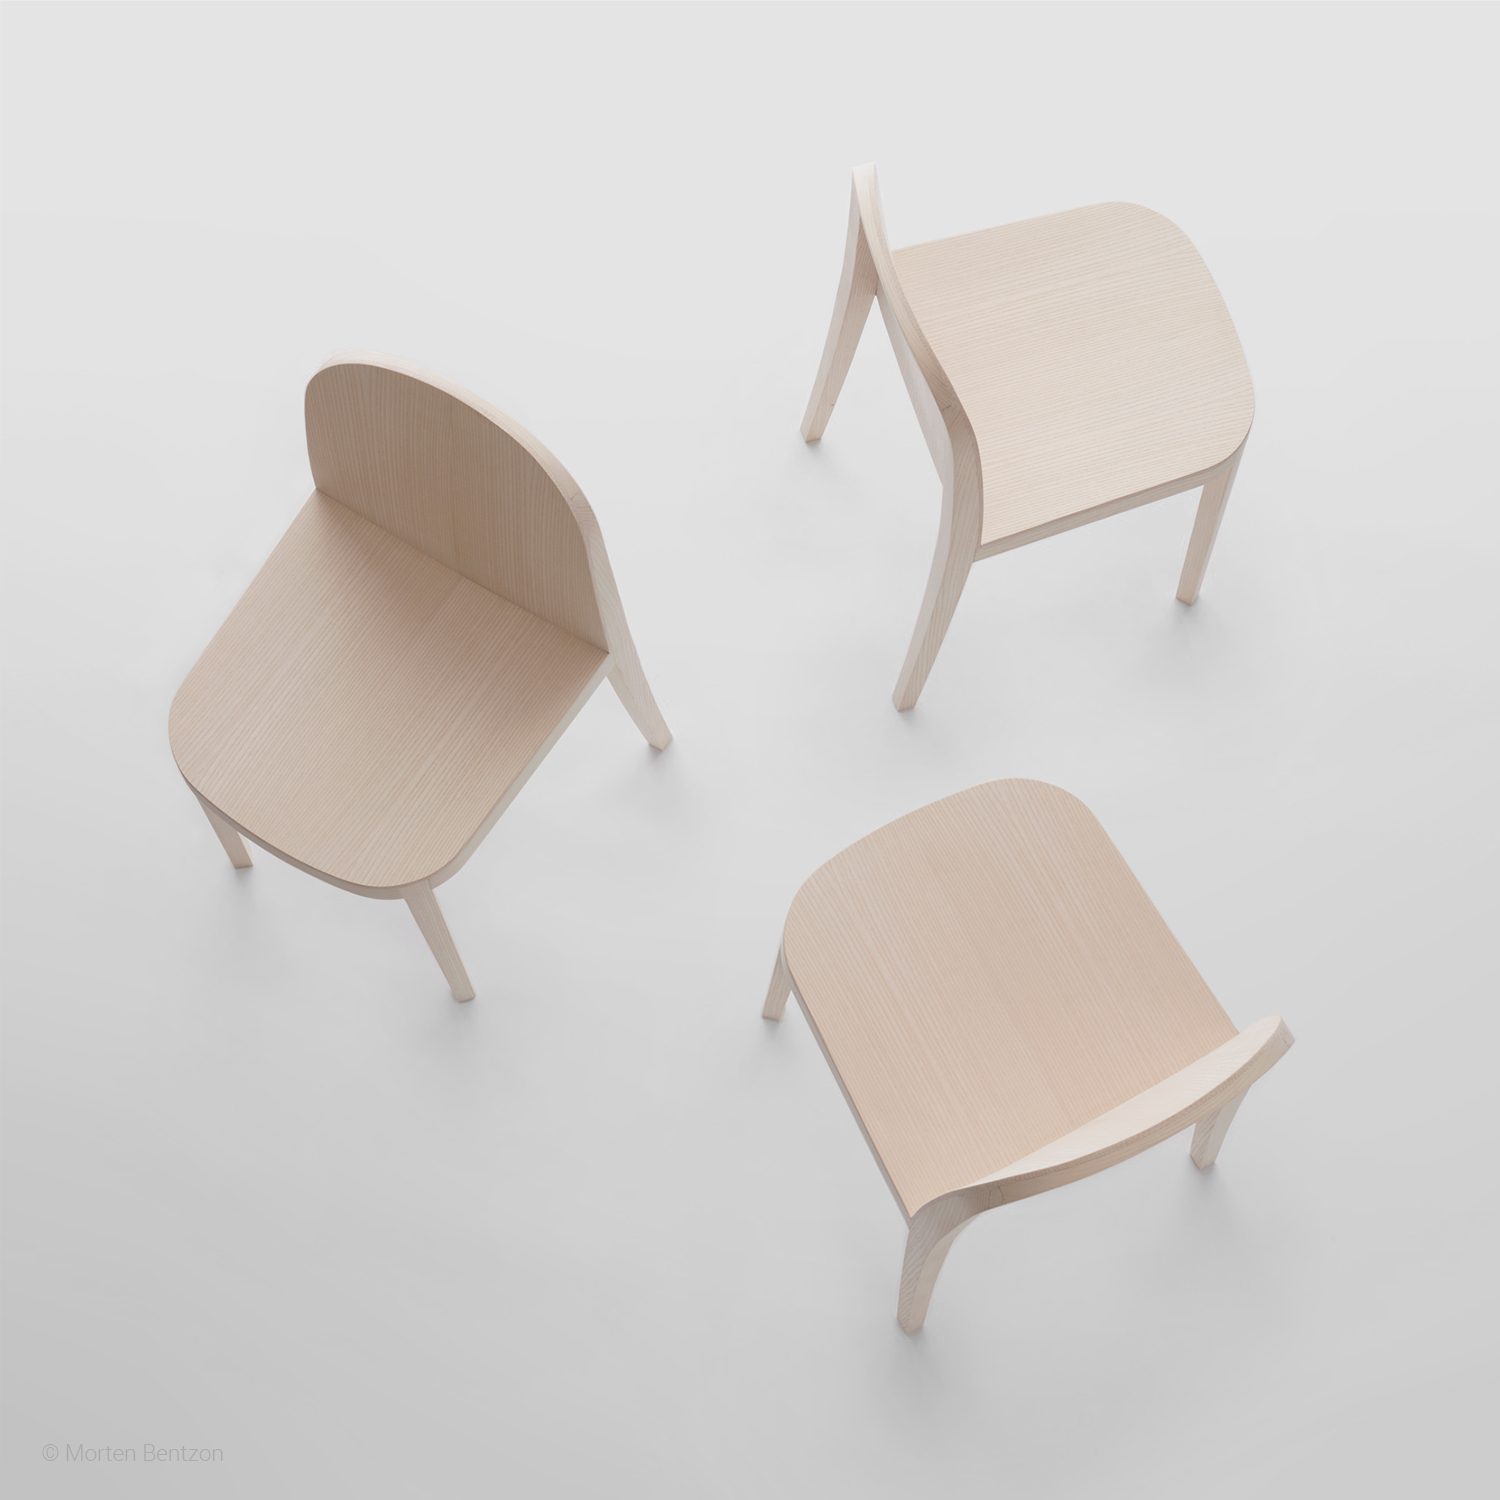 Naua chair by Mario Martinez